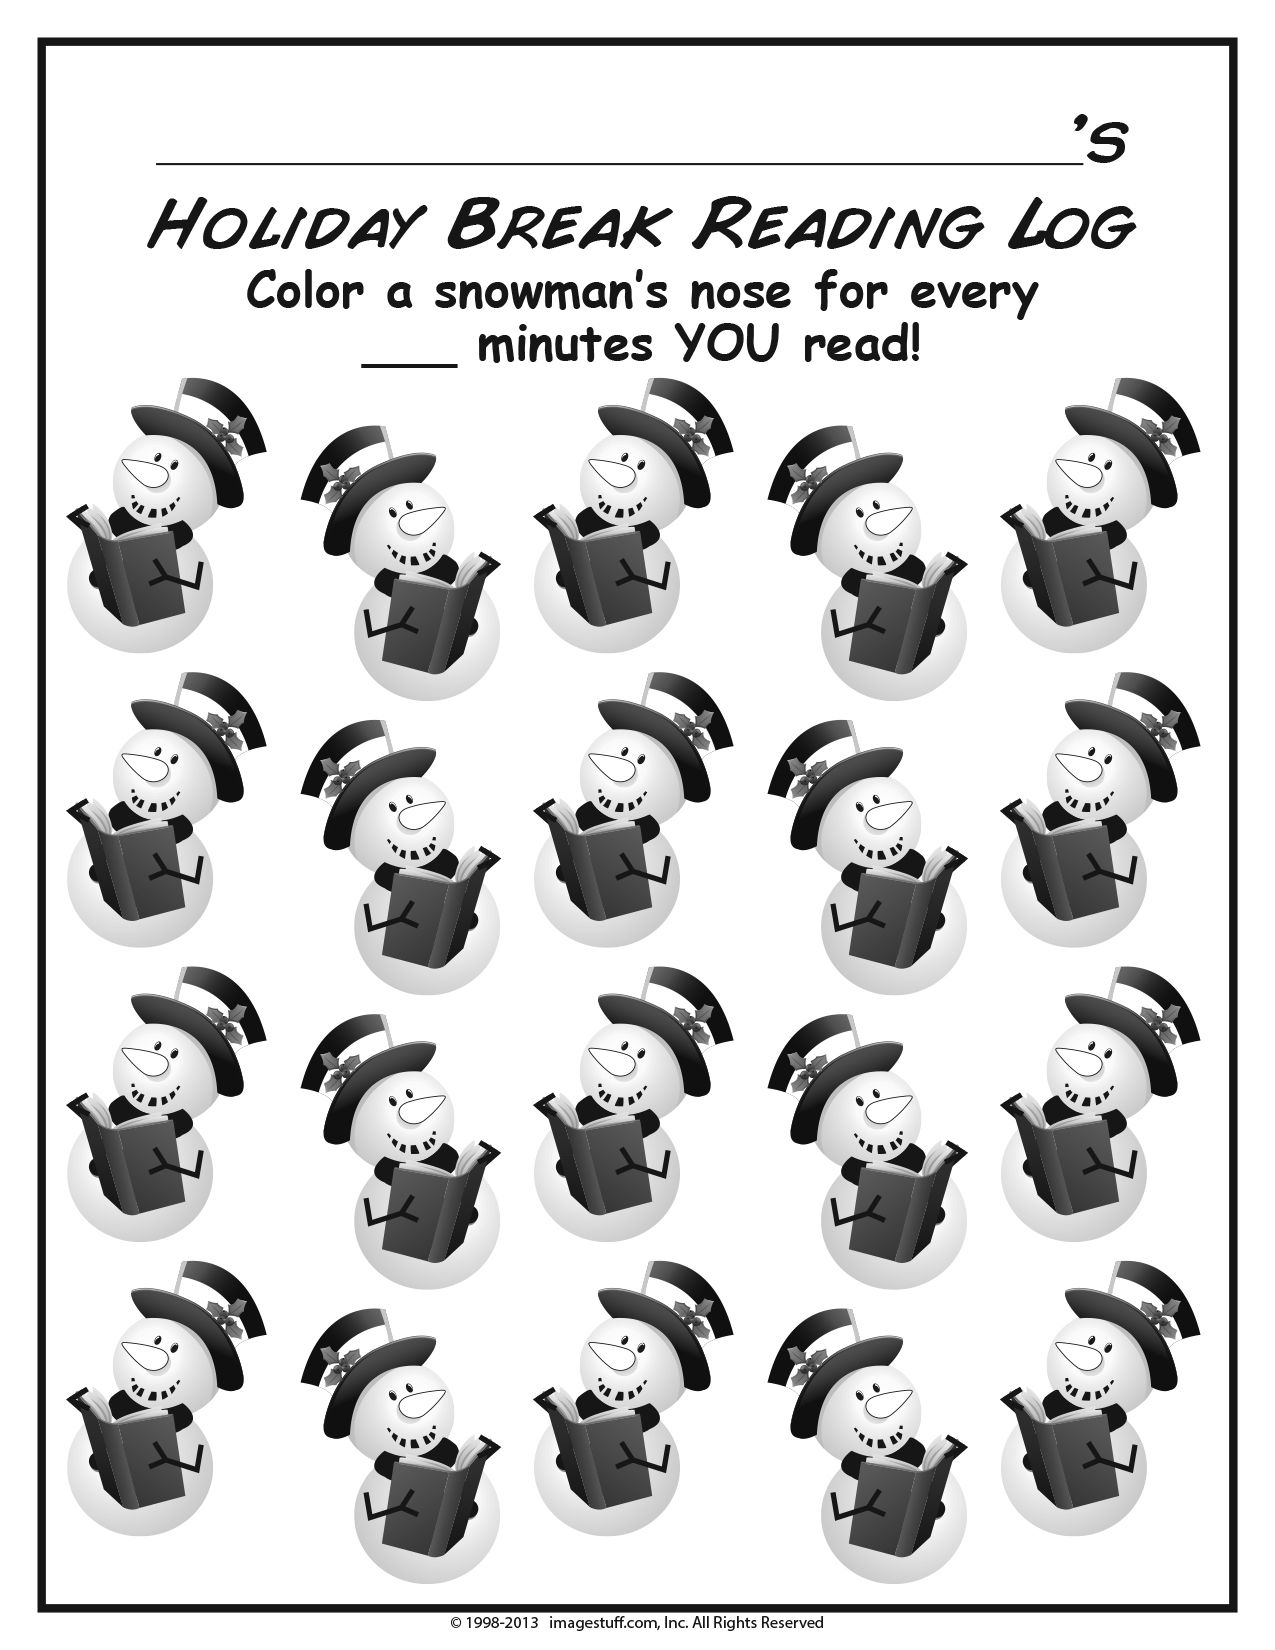 Keep You Re Little Whos Reading Over The Winter Break With Our Free Holiday Reading Worksheet